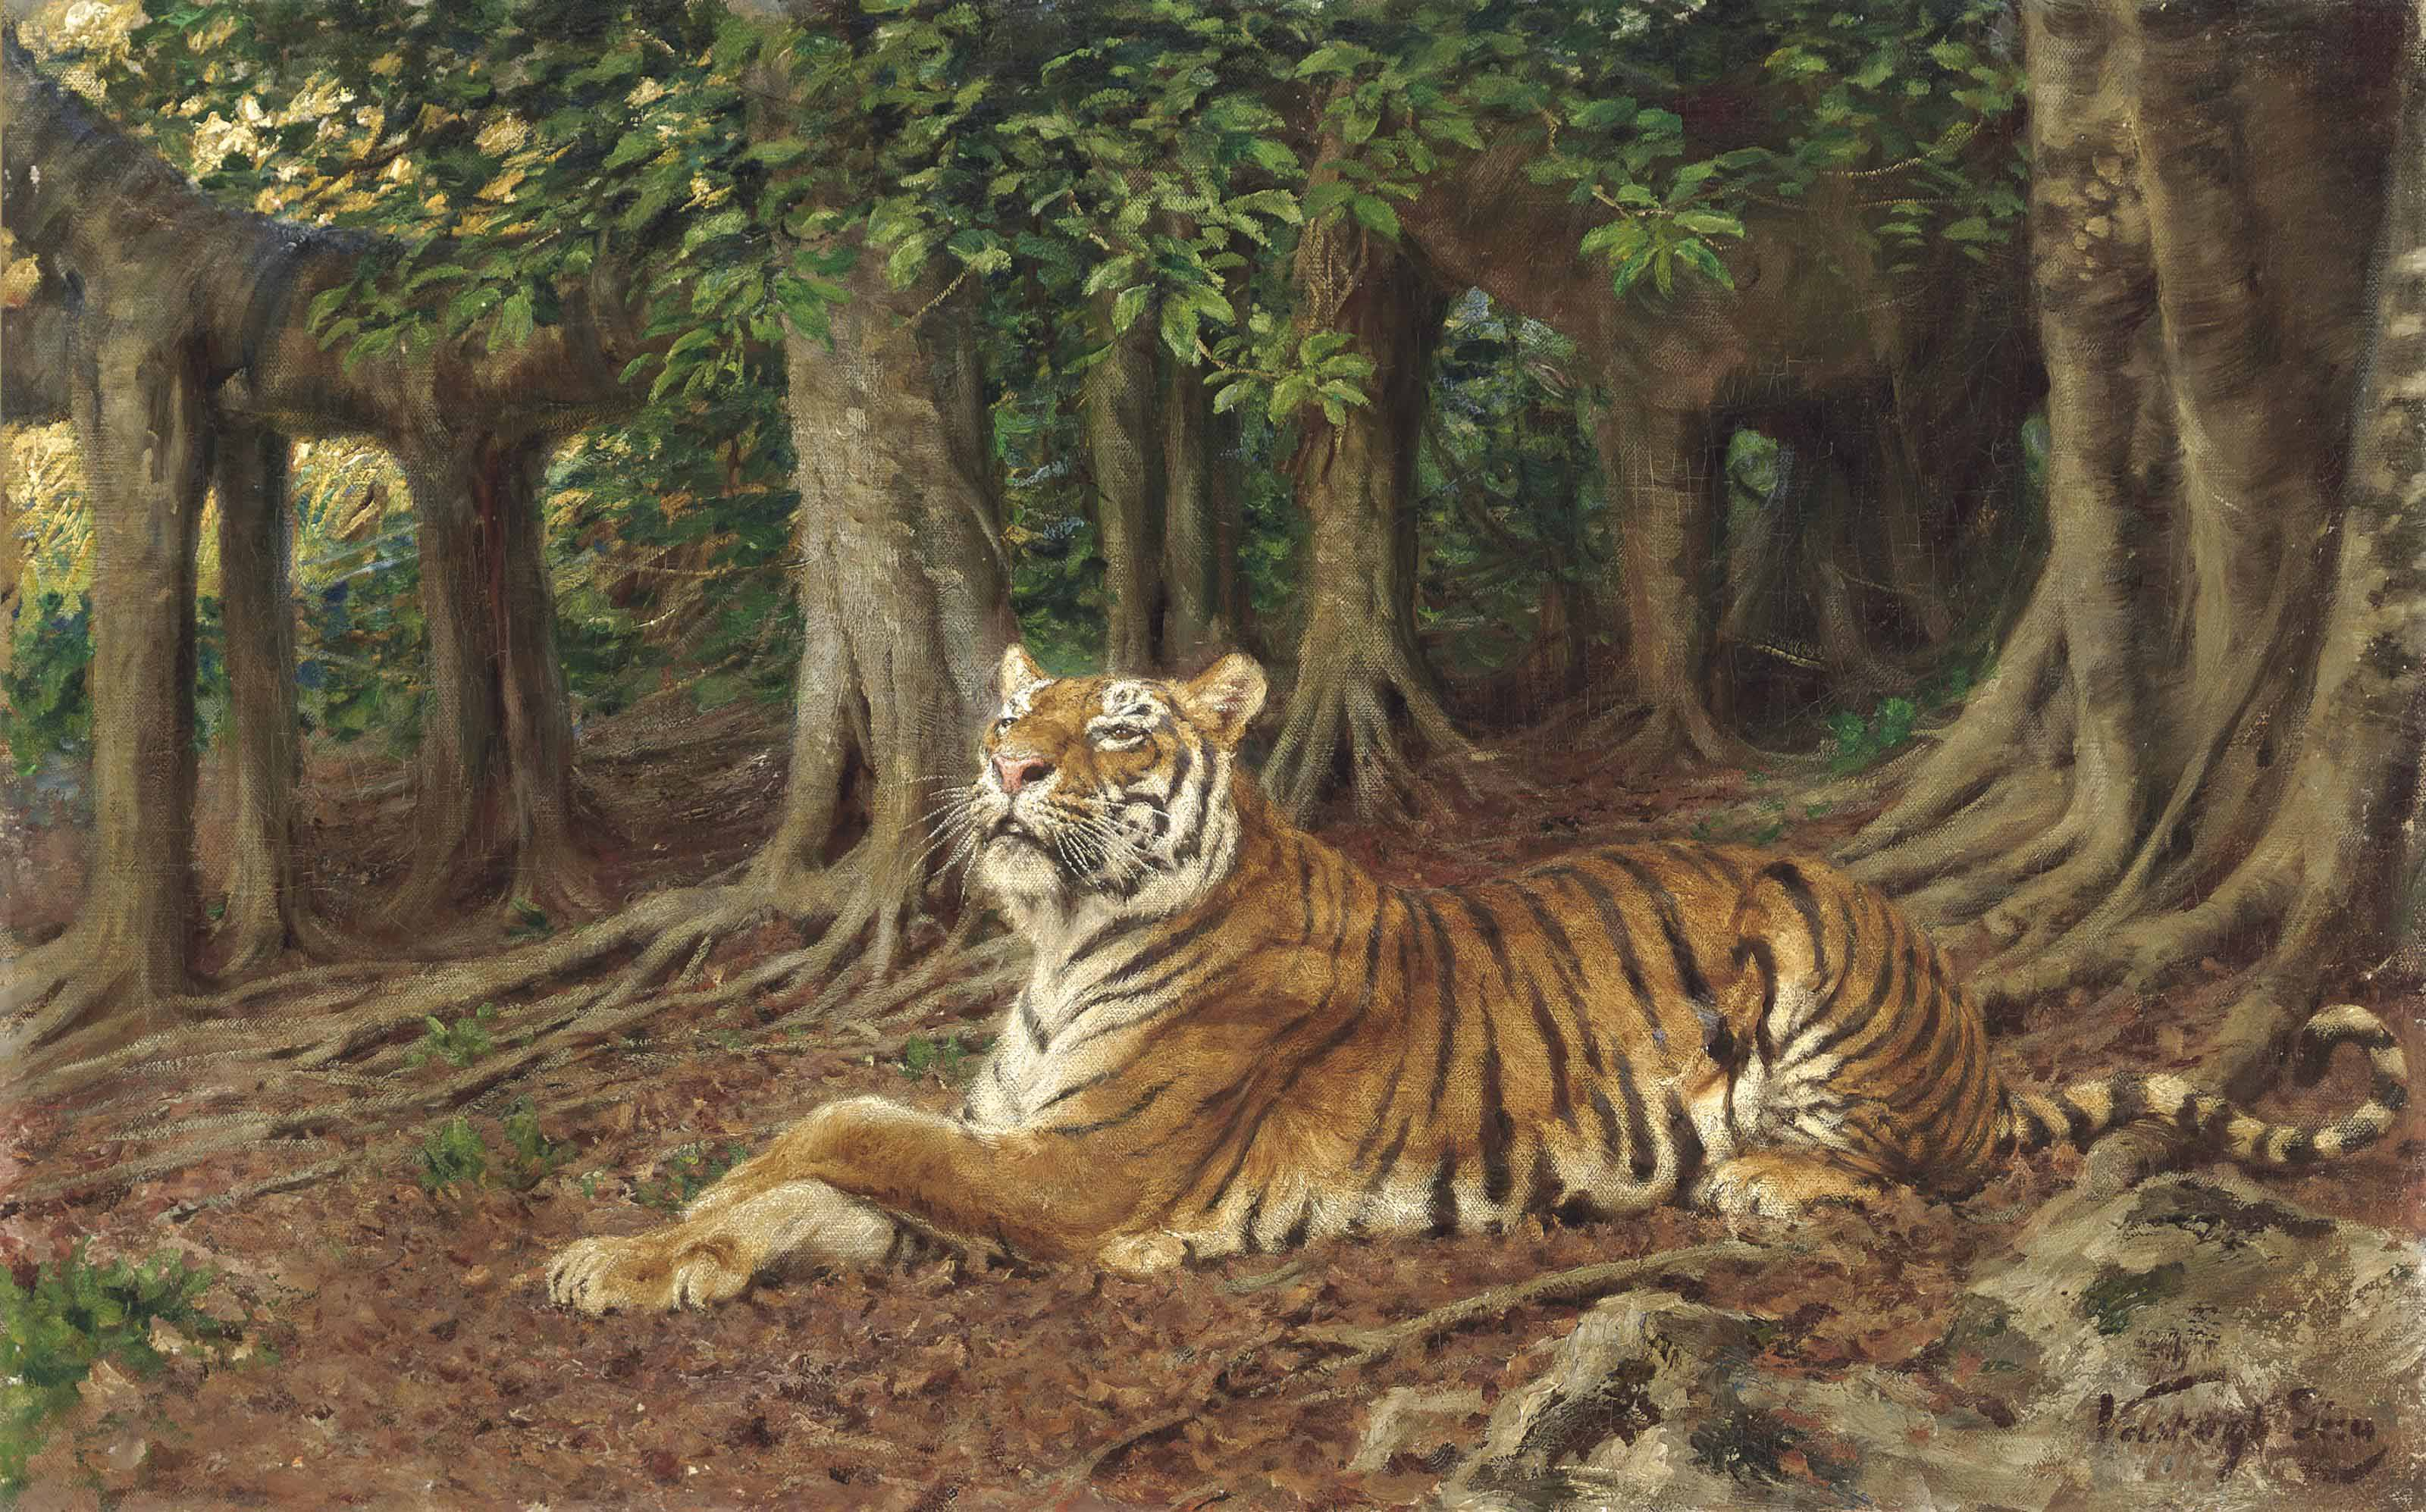 A tiger in a forest